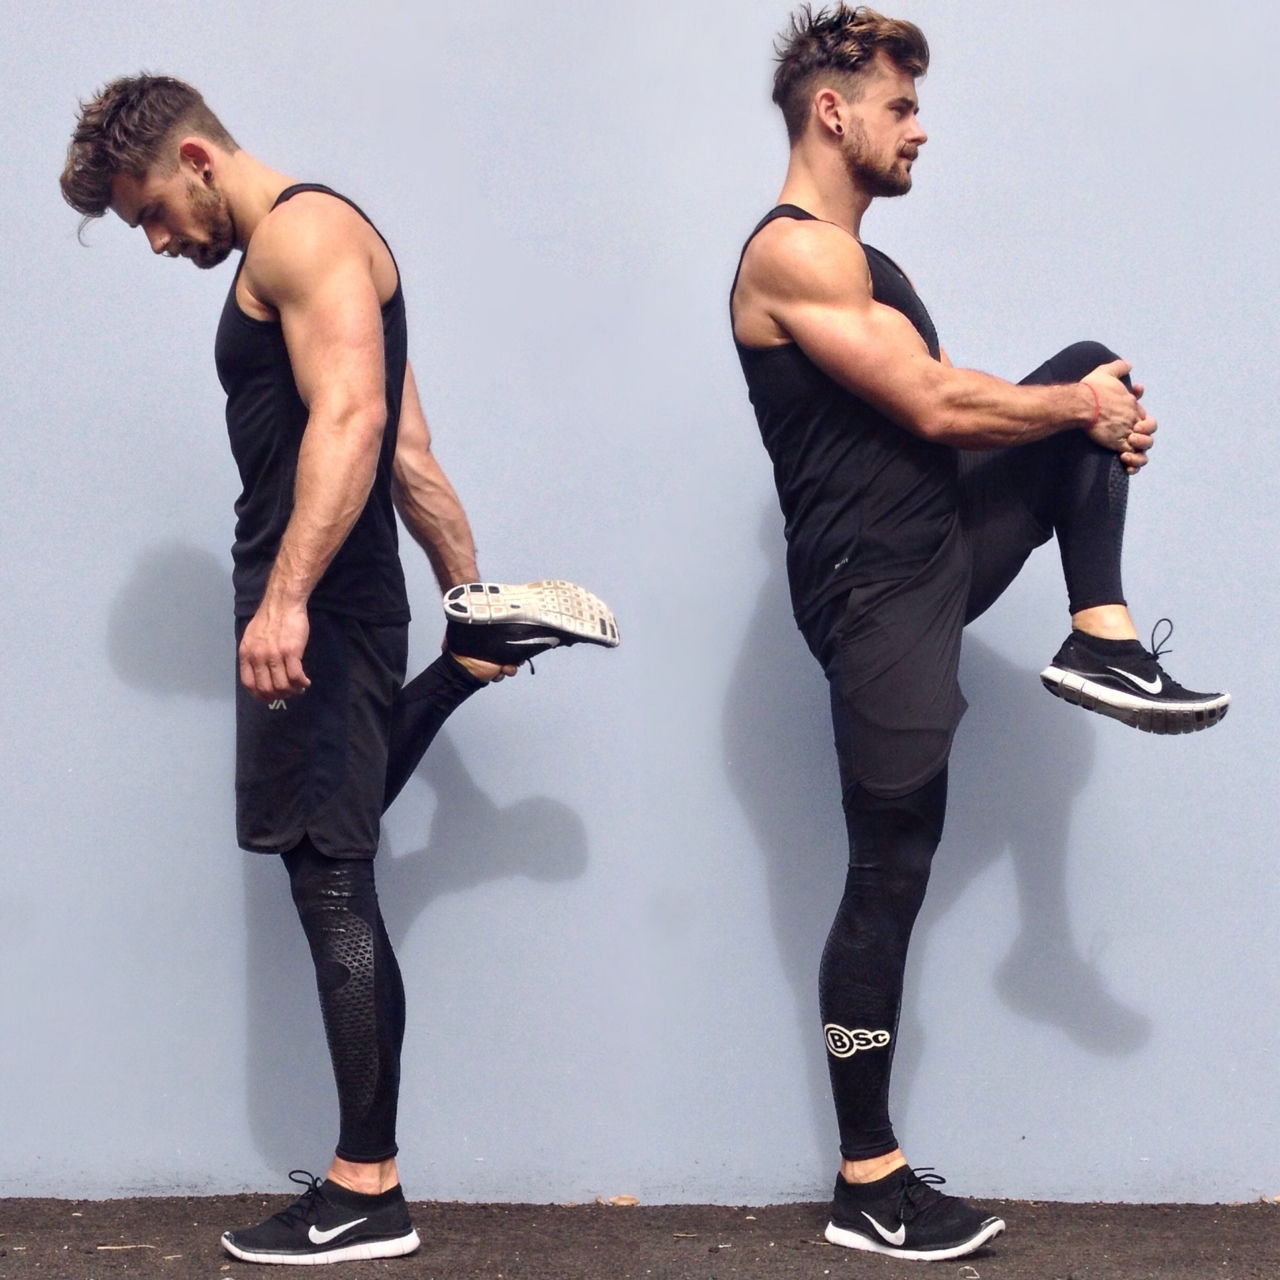 Official Site: Shop men's workout and training clothes from ASICS®. FREE SHIPPING on all orders.